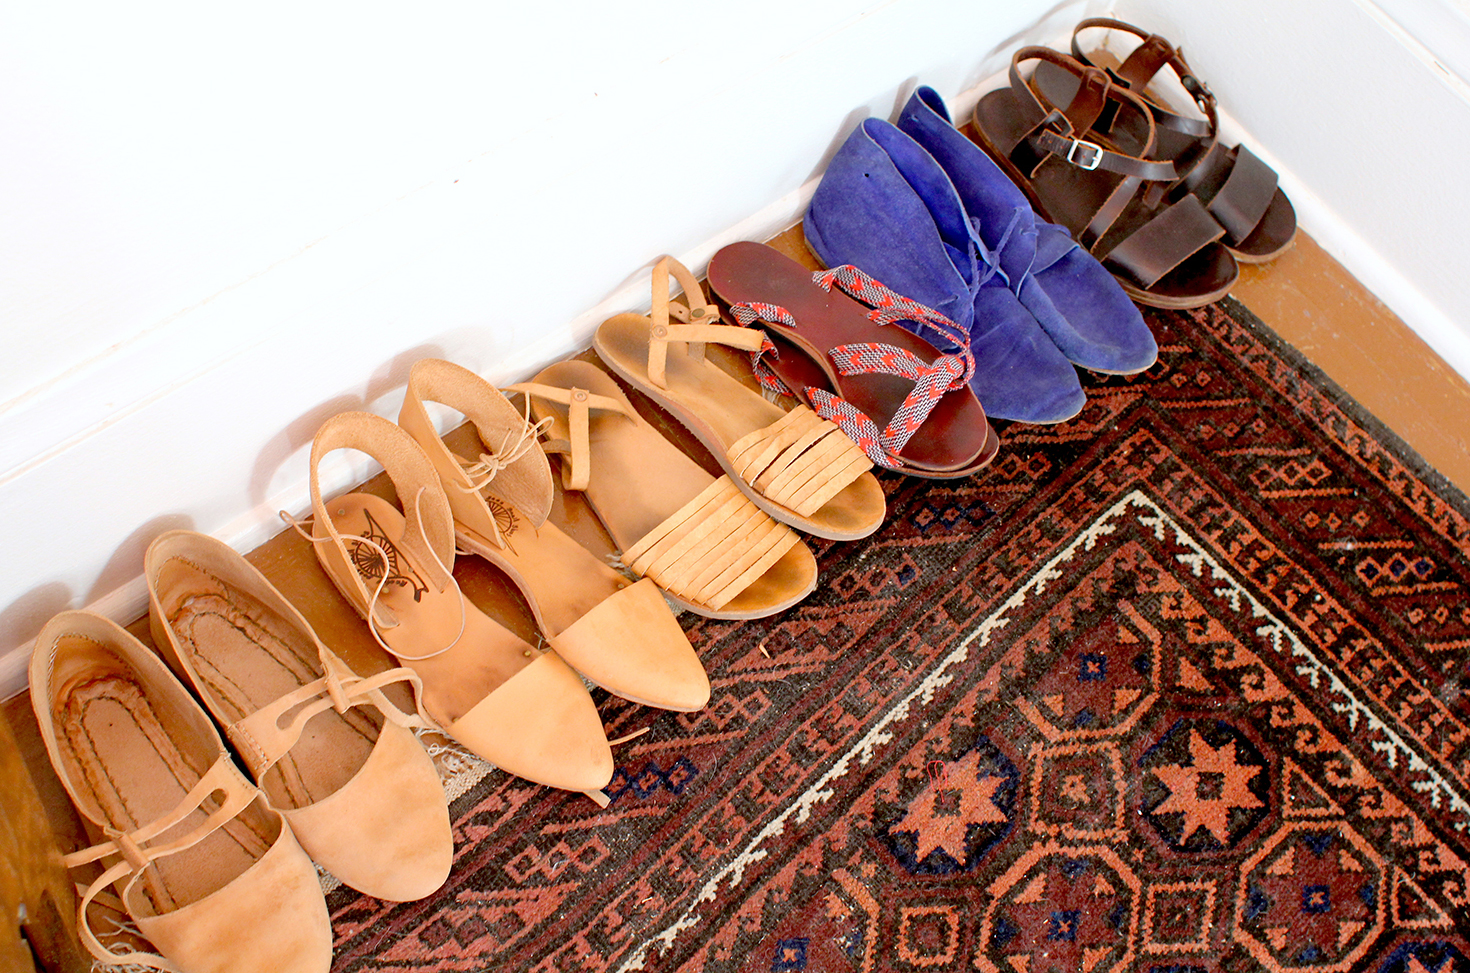 Edition-Local-Rachel-Corry-Snail-Shoes-26.jpg